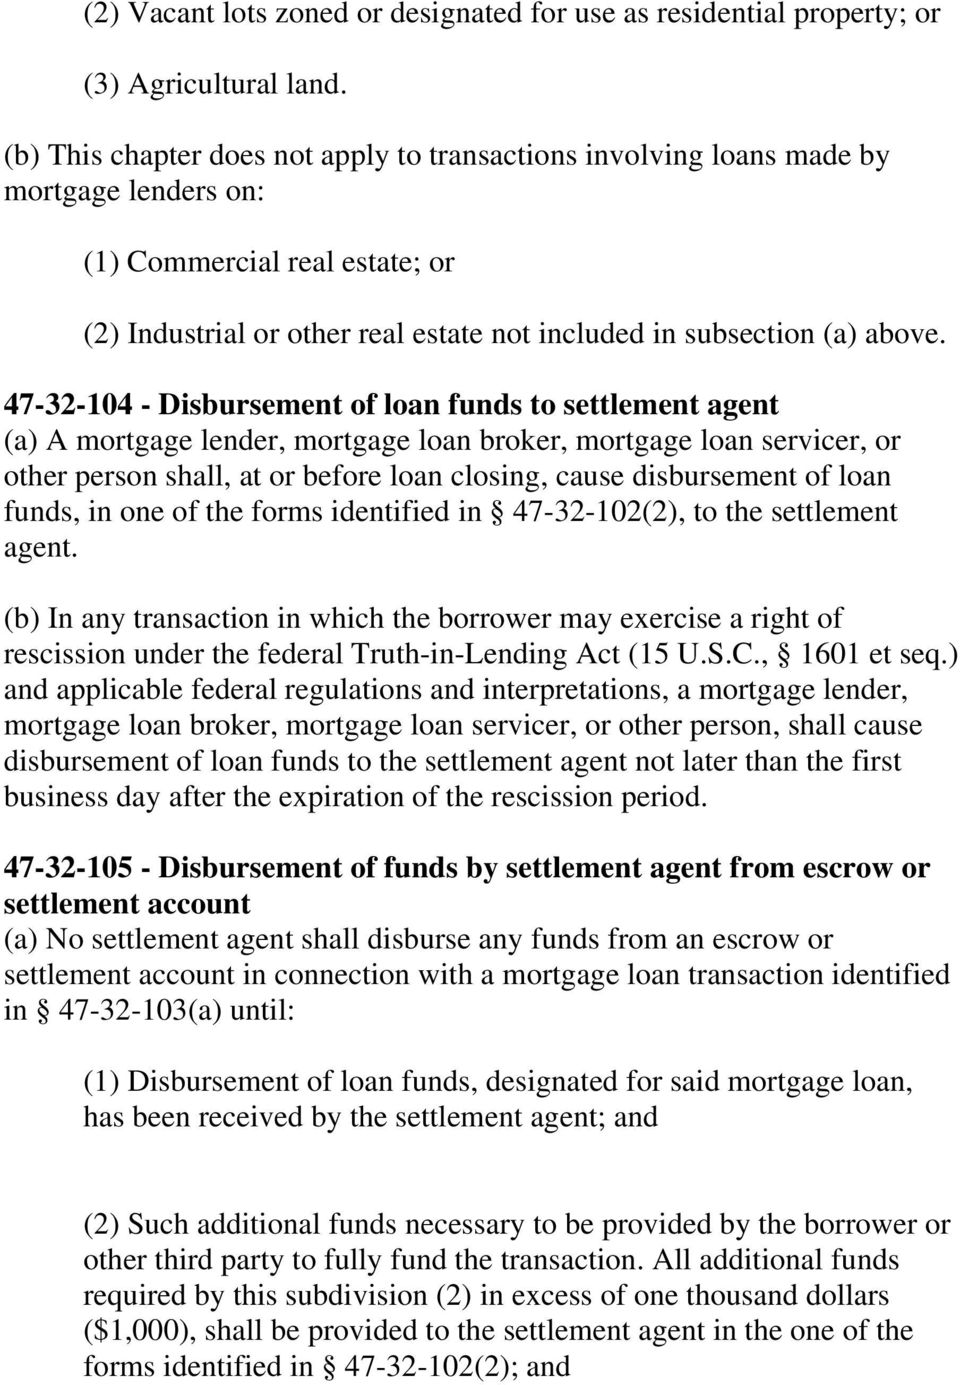 47-32-104 - Disbursement of loan funds to settlement agent (a) A mortgage lender, mortgage loan broker, mortgage loan servicer, or other person shall, at or before loan closing, cause disbursement of